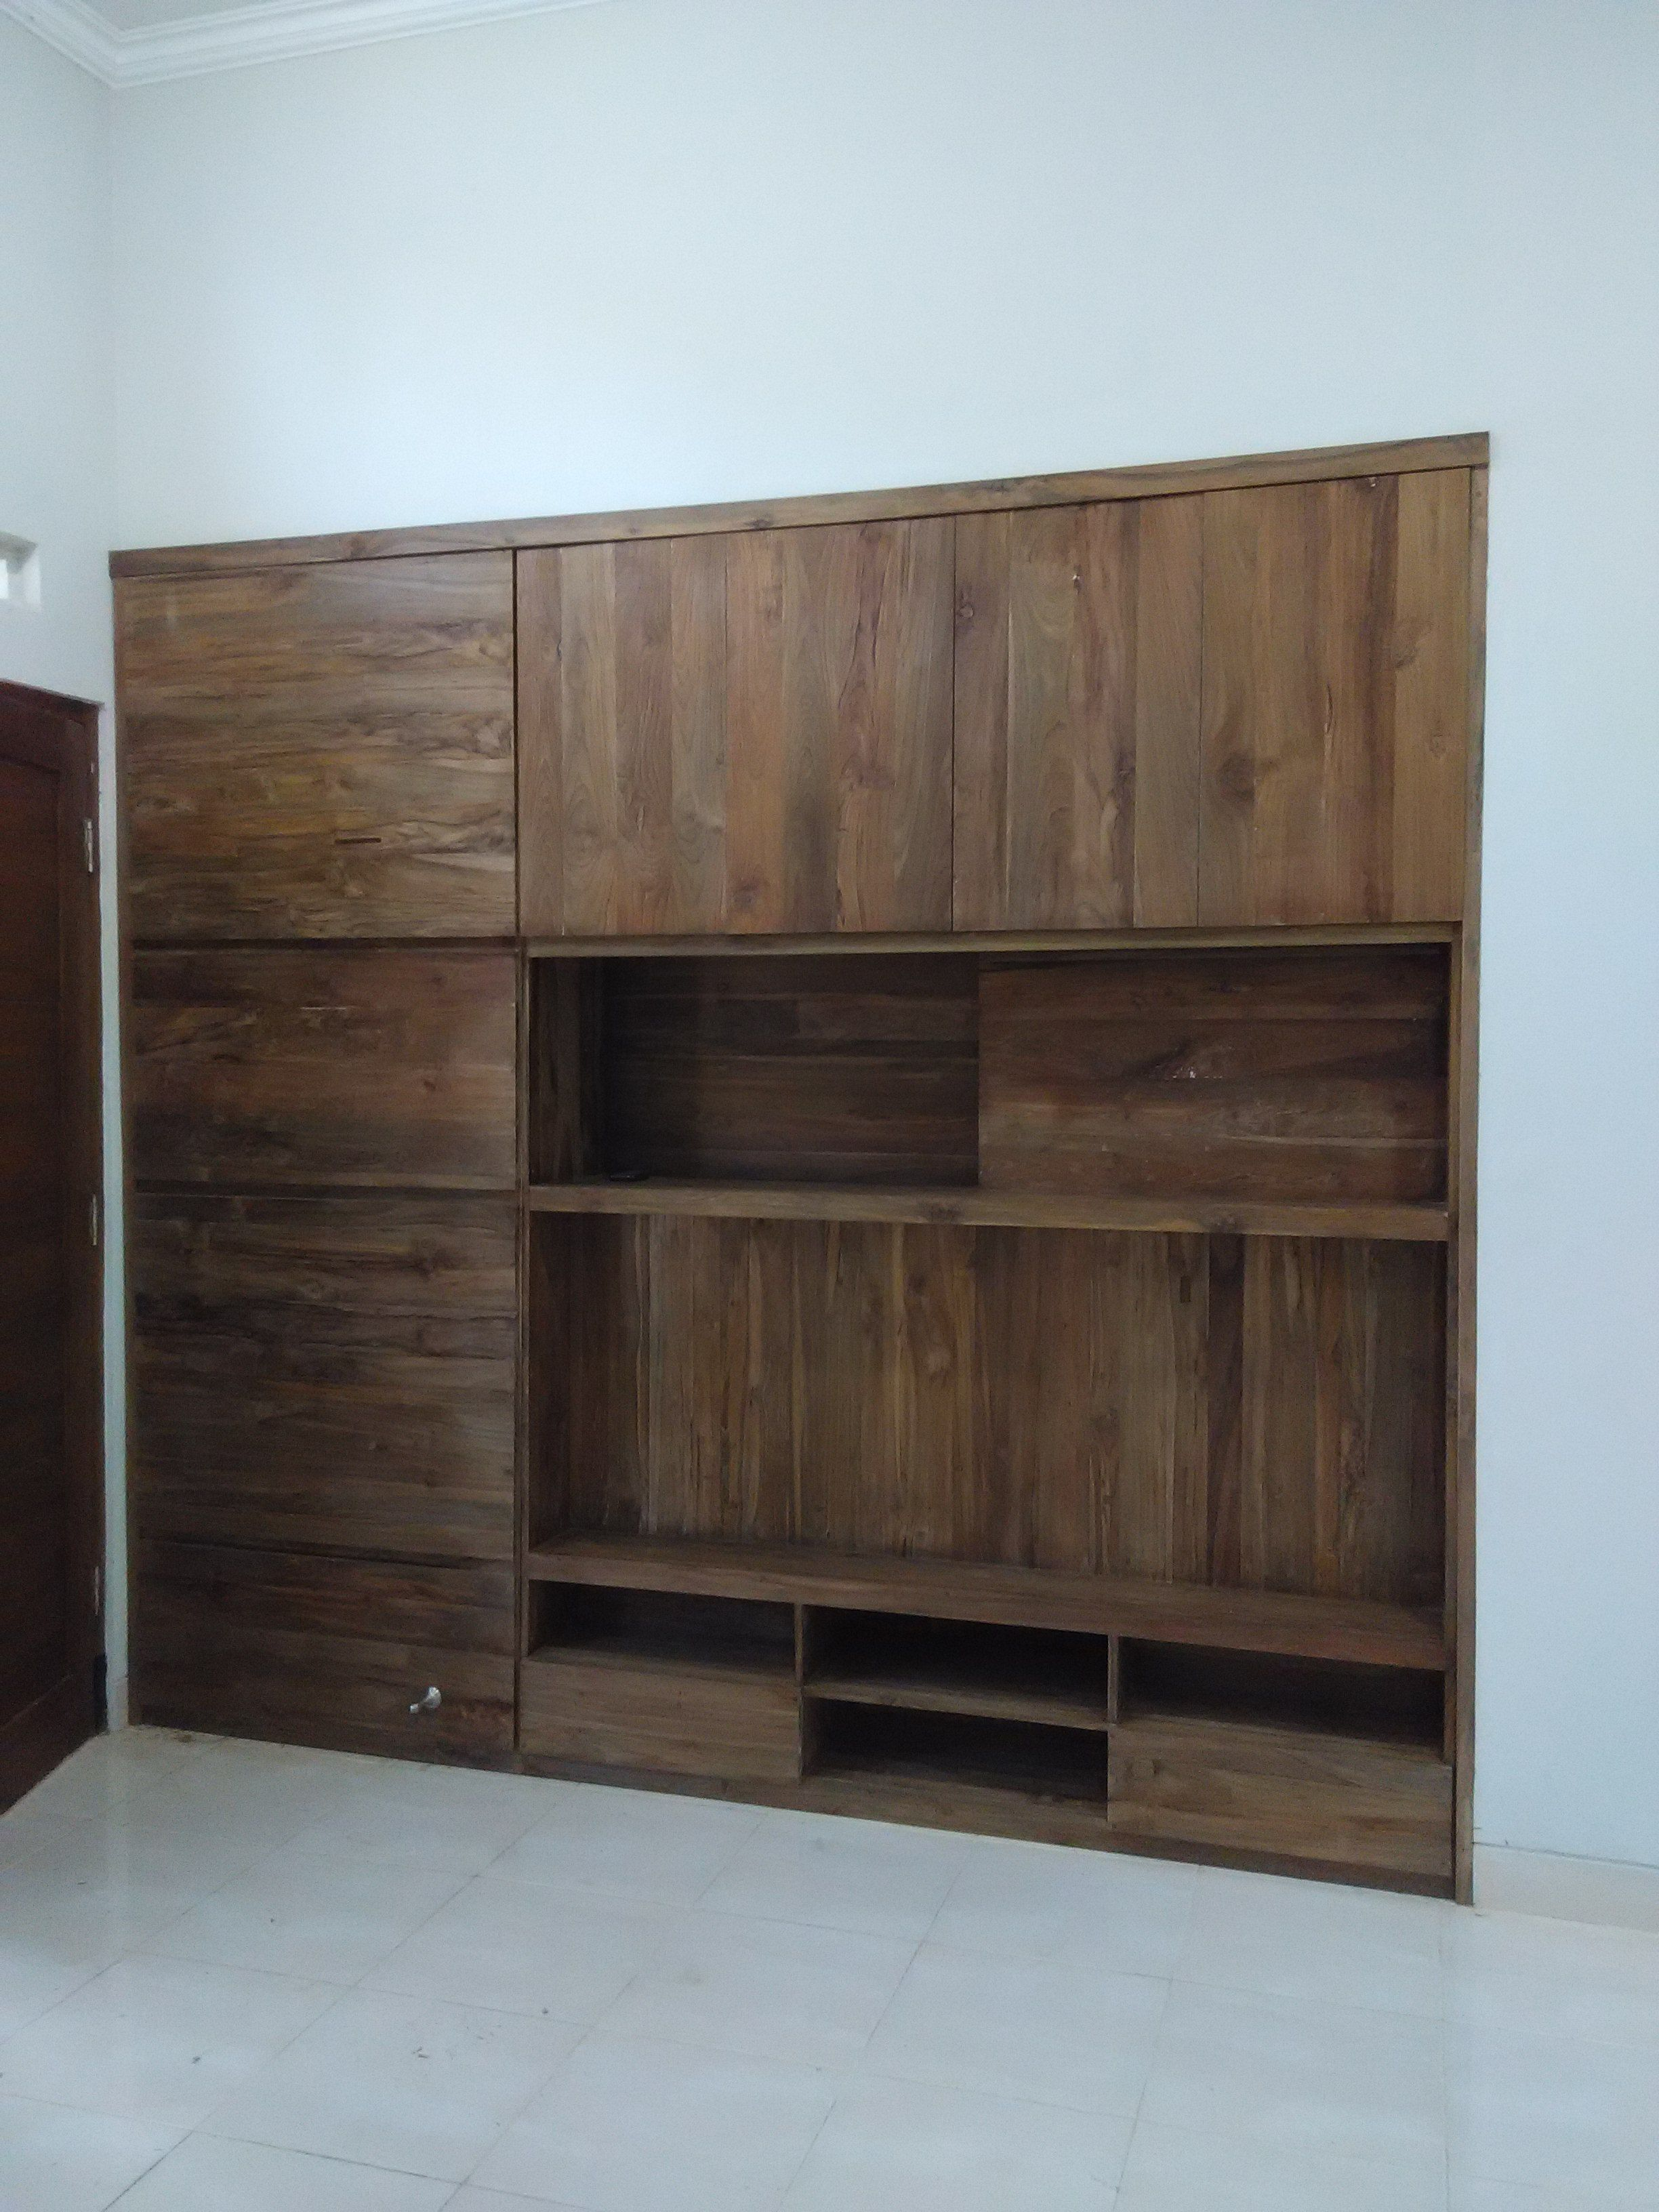 Built in tv cabinet as a room divider for saving space furniture